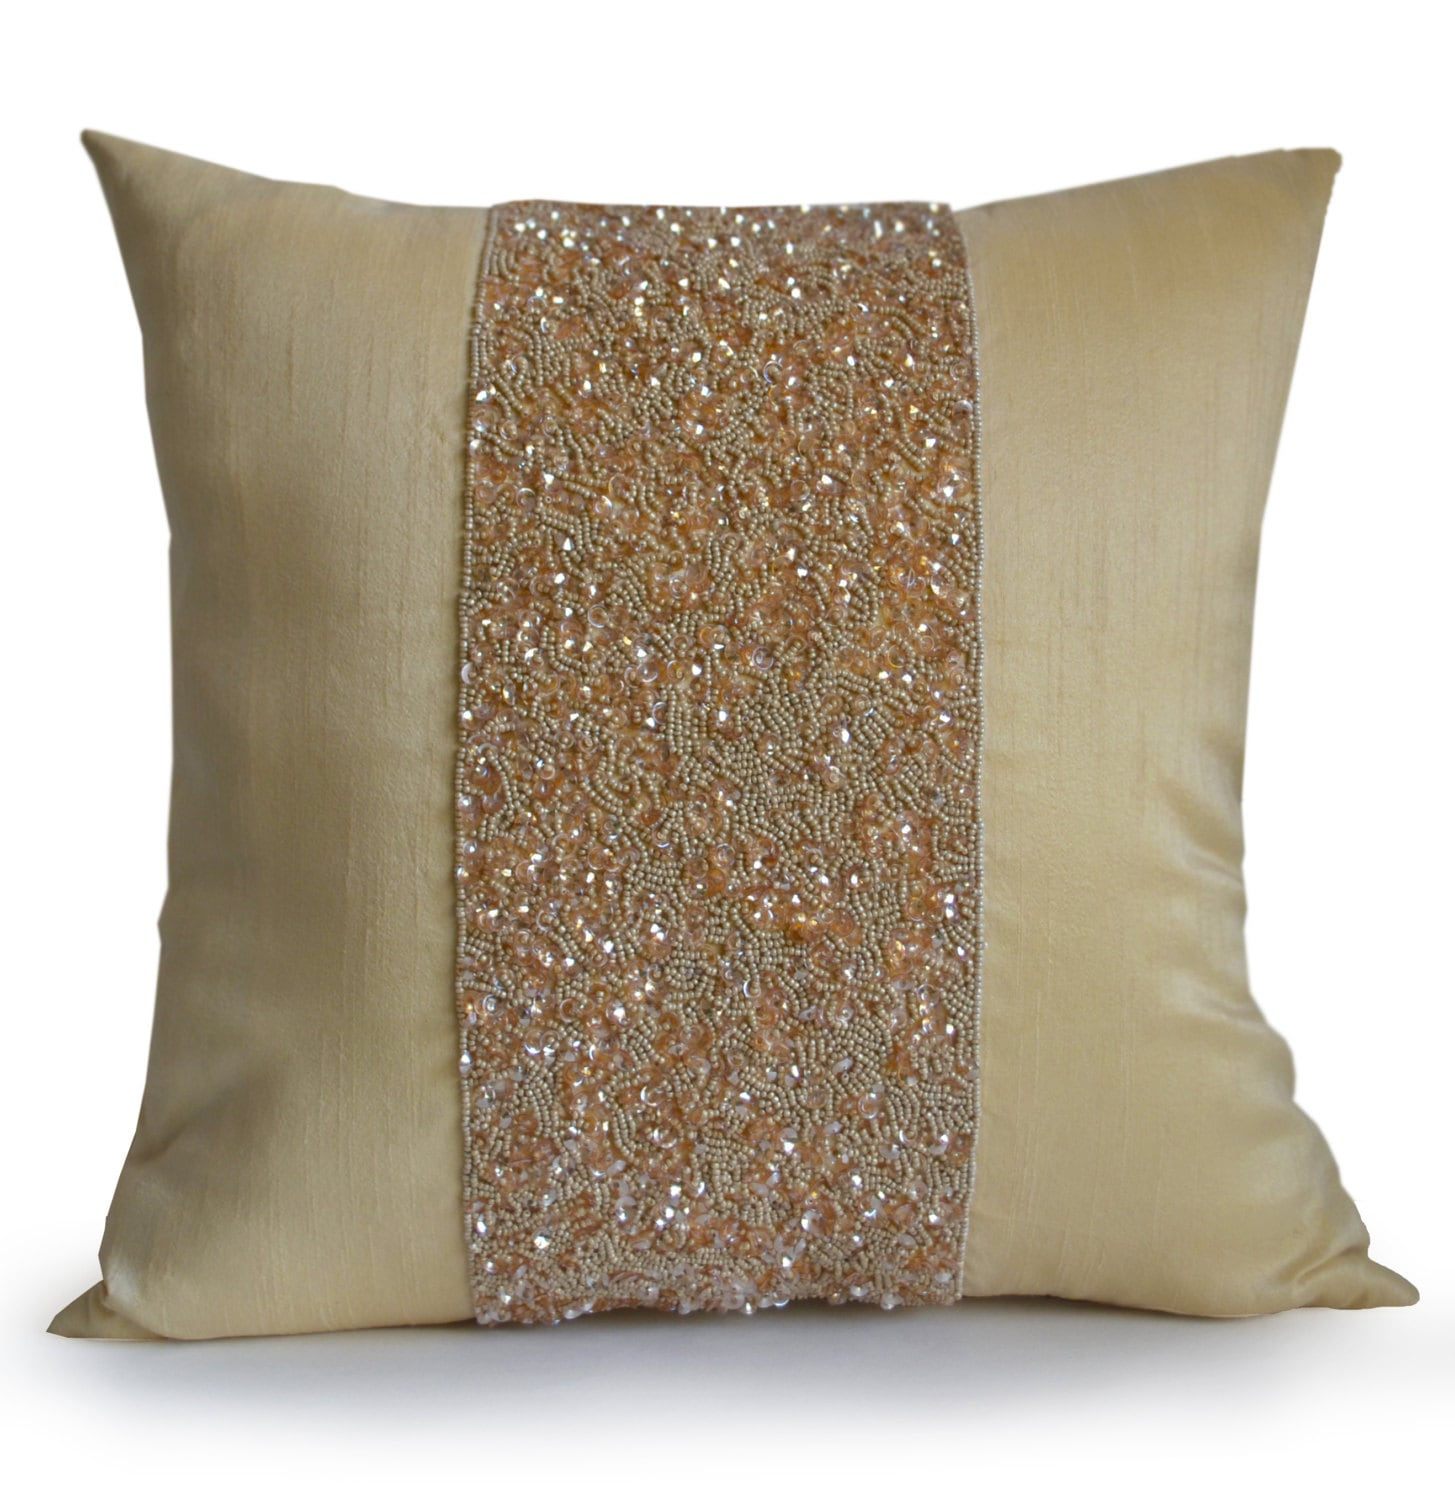 Beige Throw Pillow Cover Beige Decorative Pillow Cover Beige